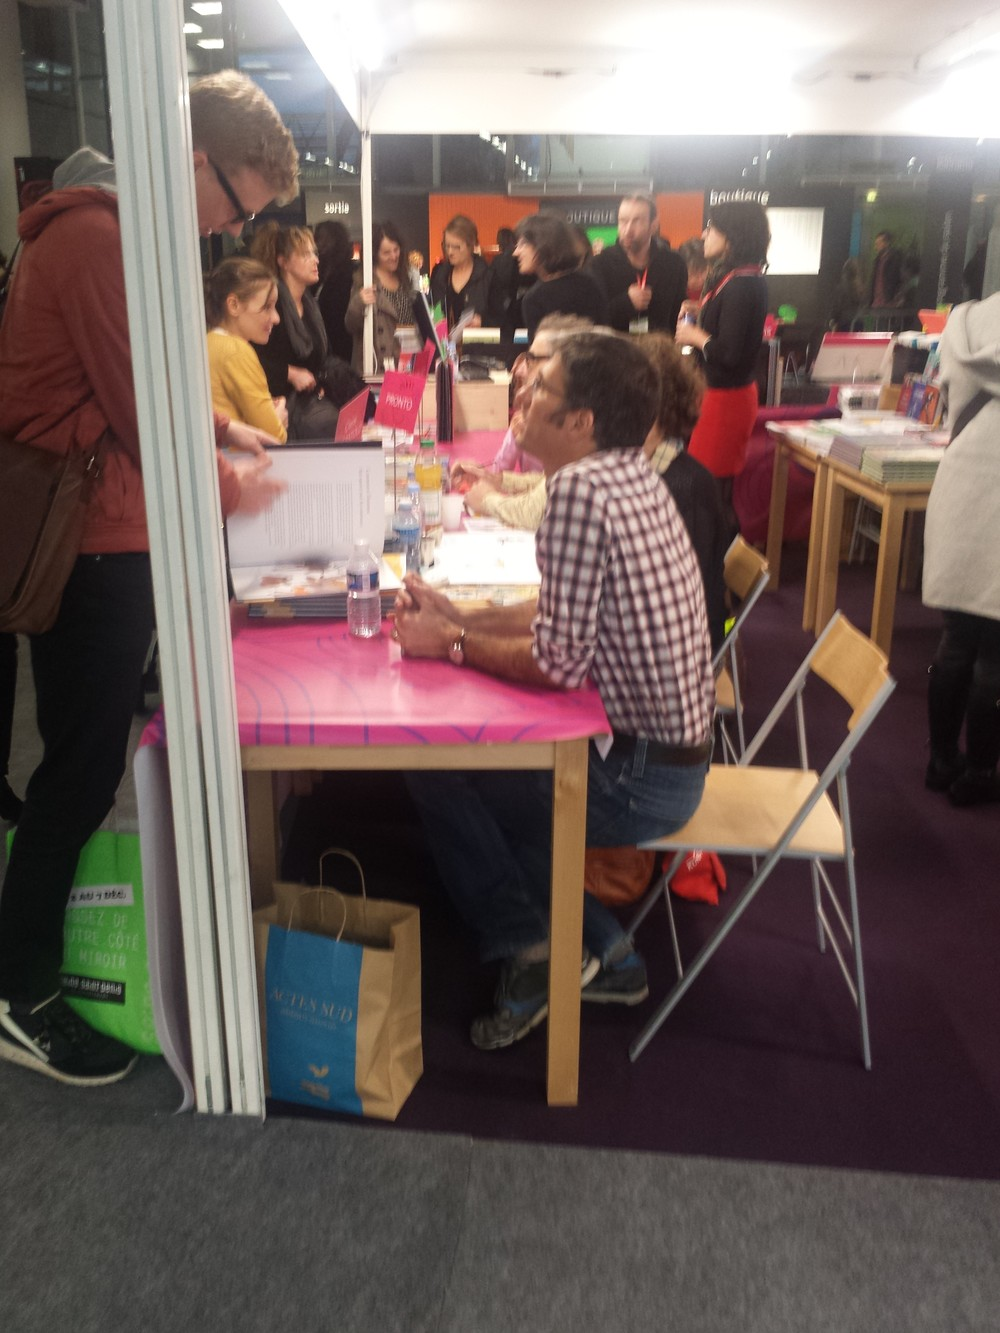 SLPJ is a great chance for readers of all ages to meet the writers and illustrators.